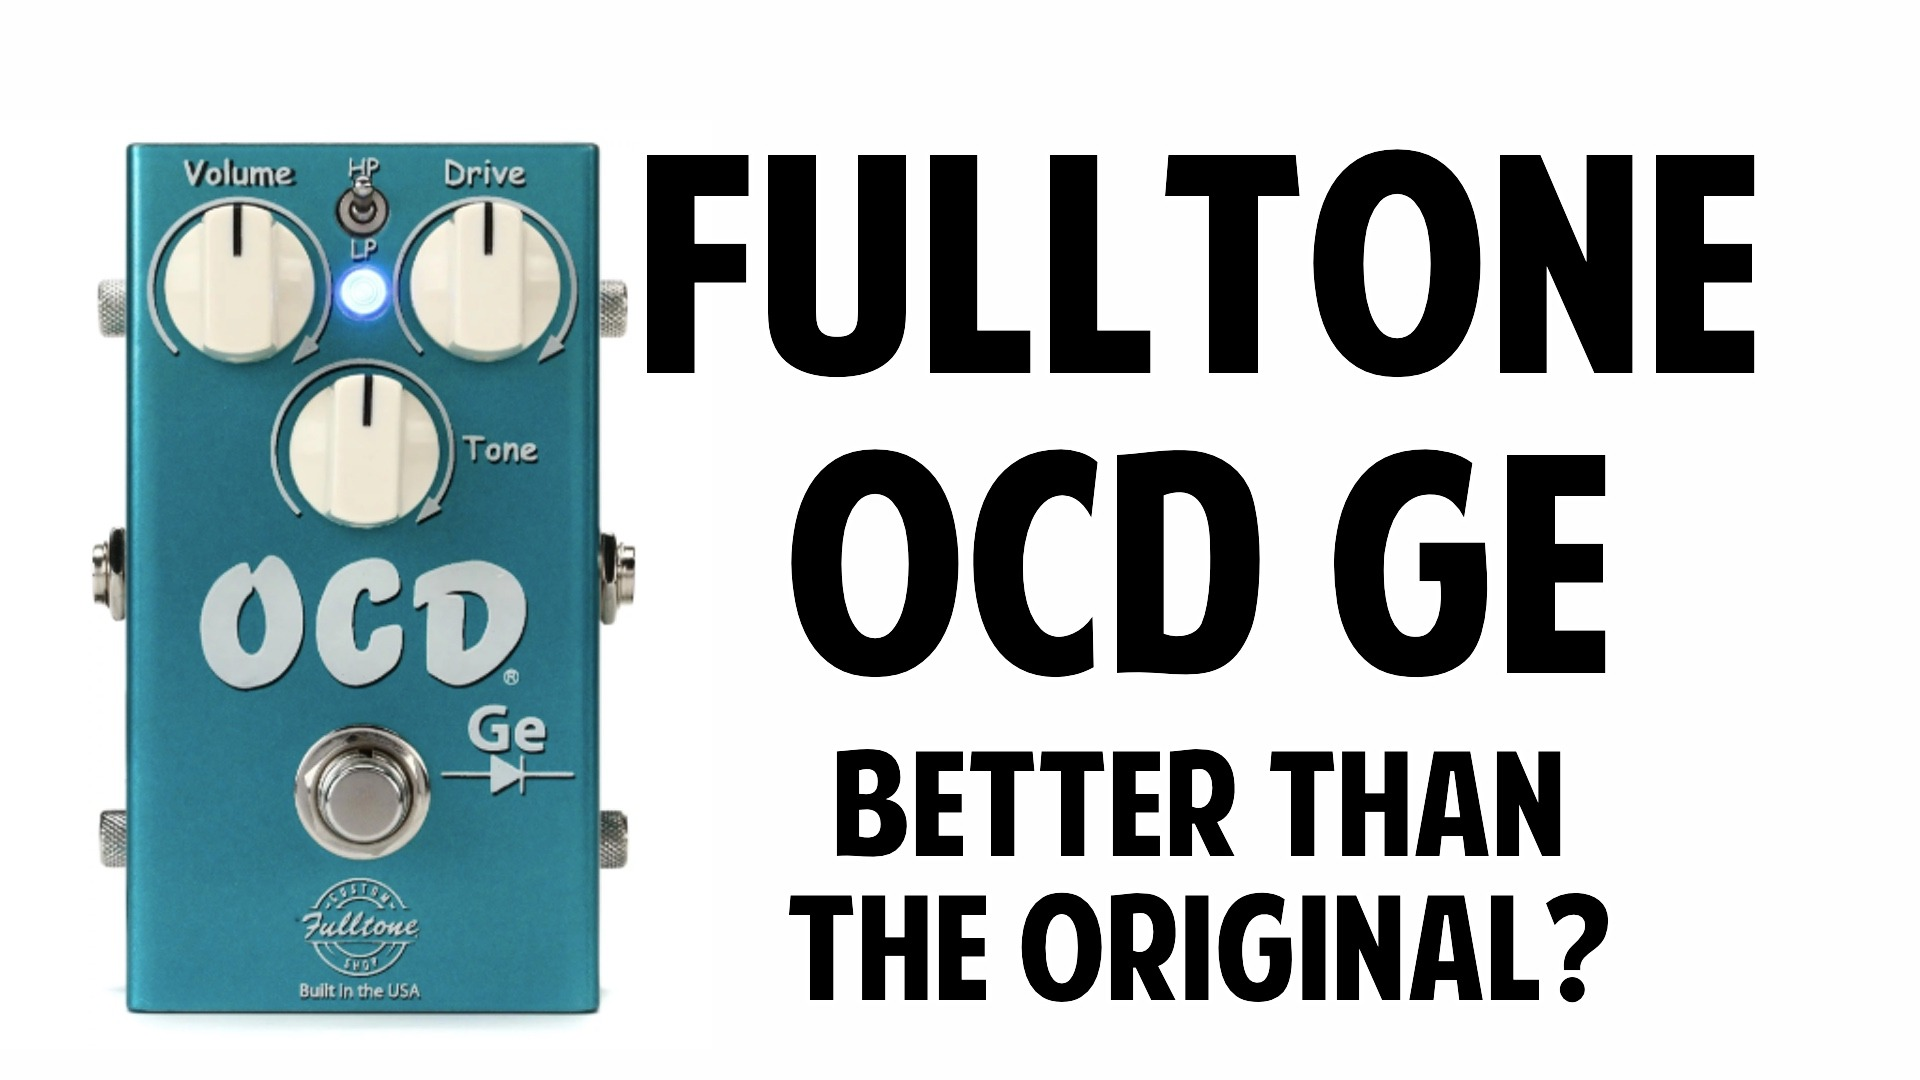 Fulltone OCD Ge Review